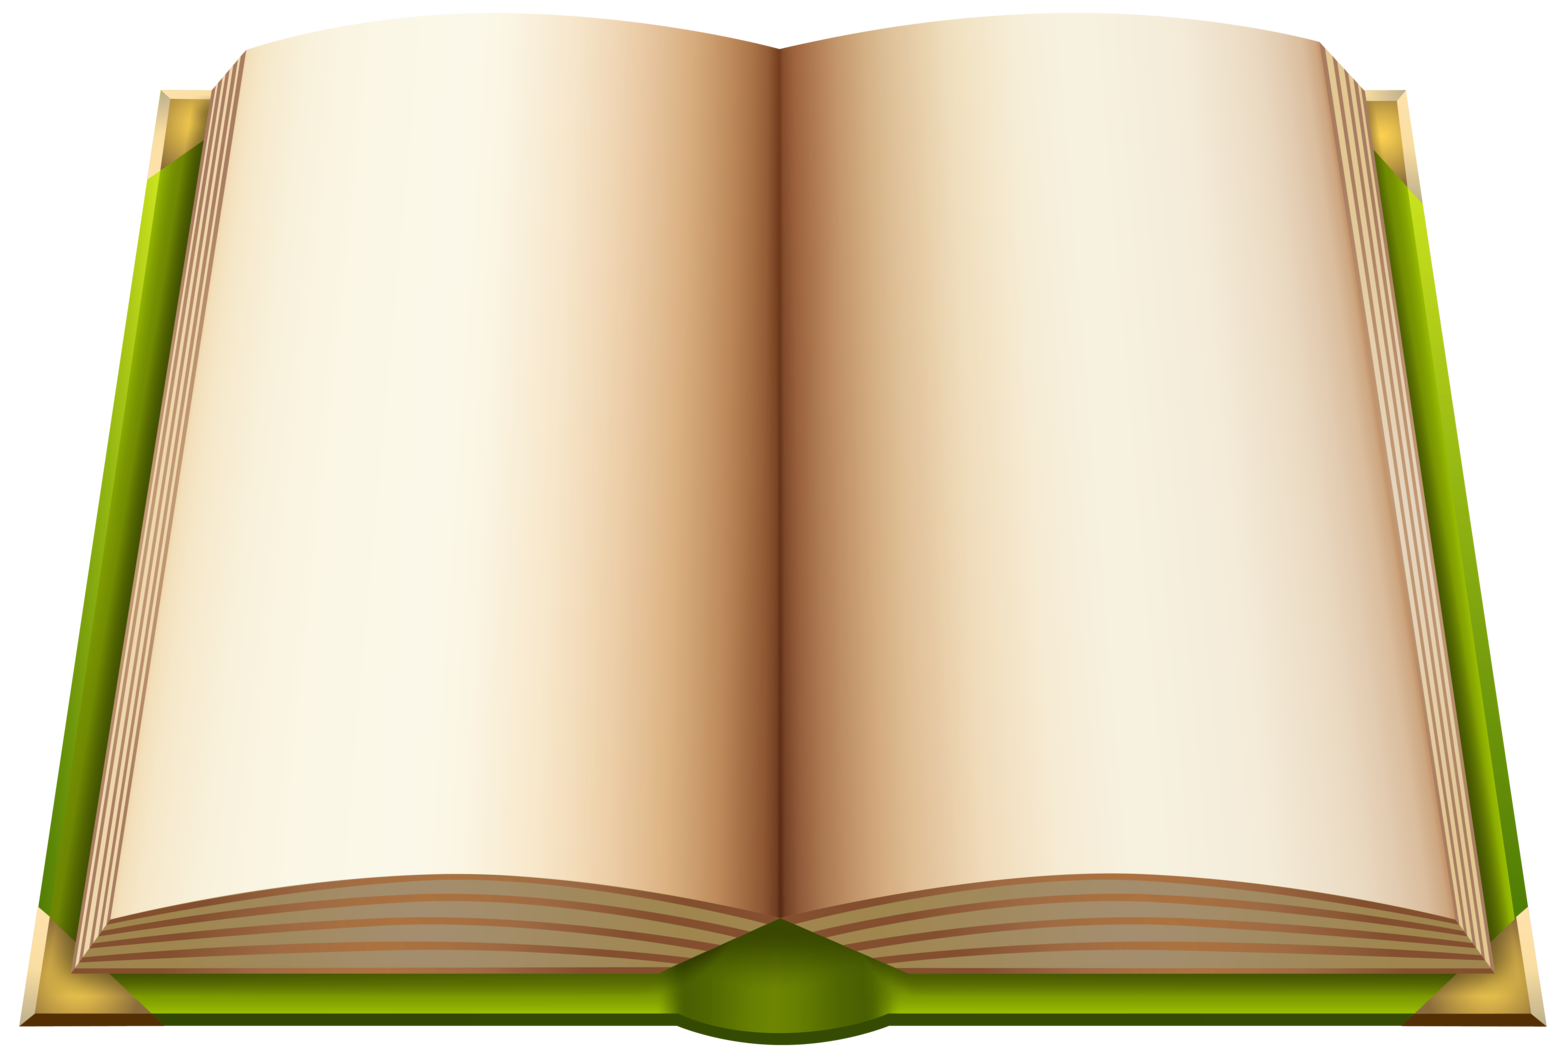 Green Open Book PNG ClipArt